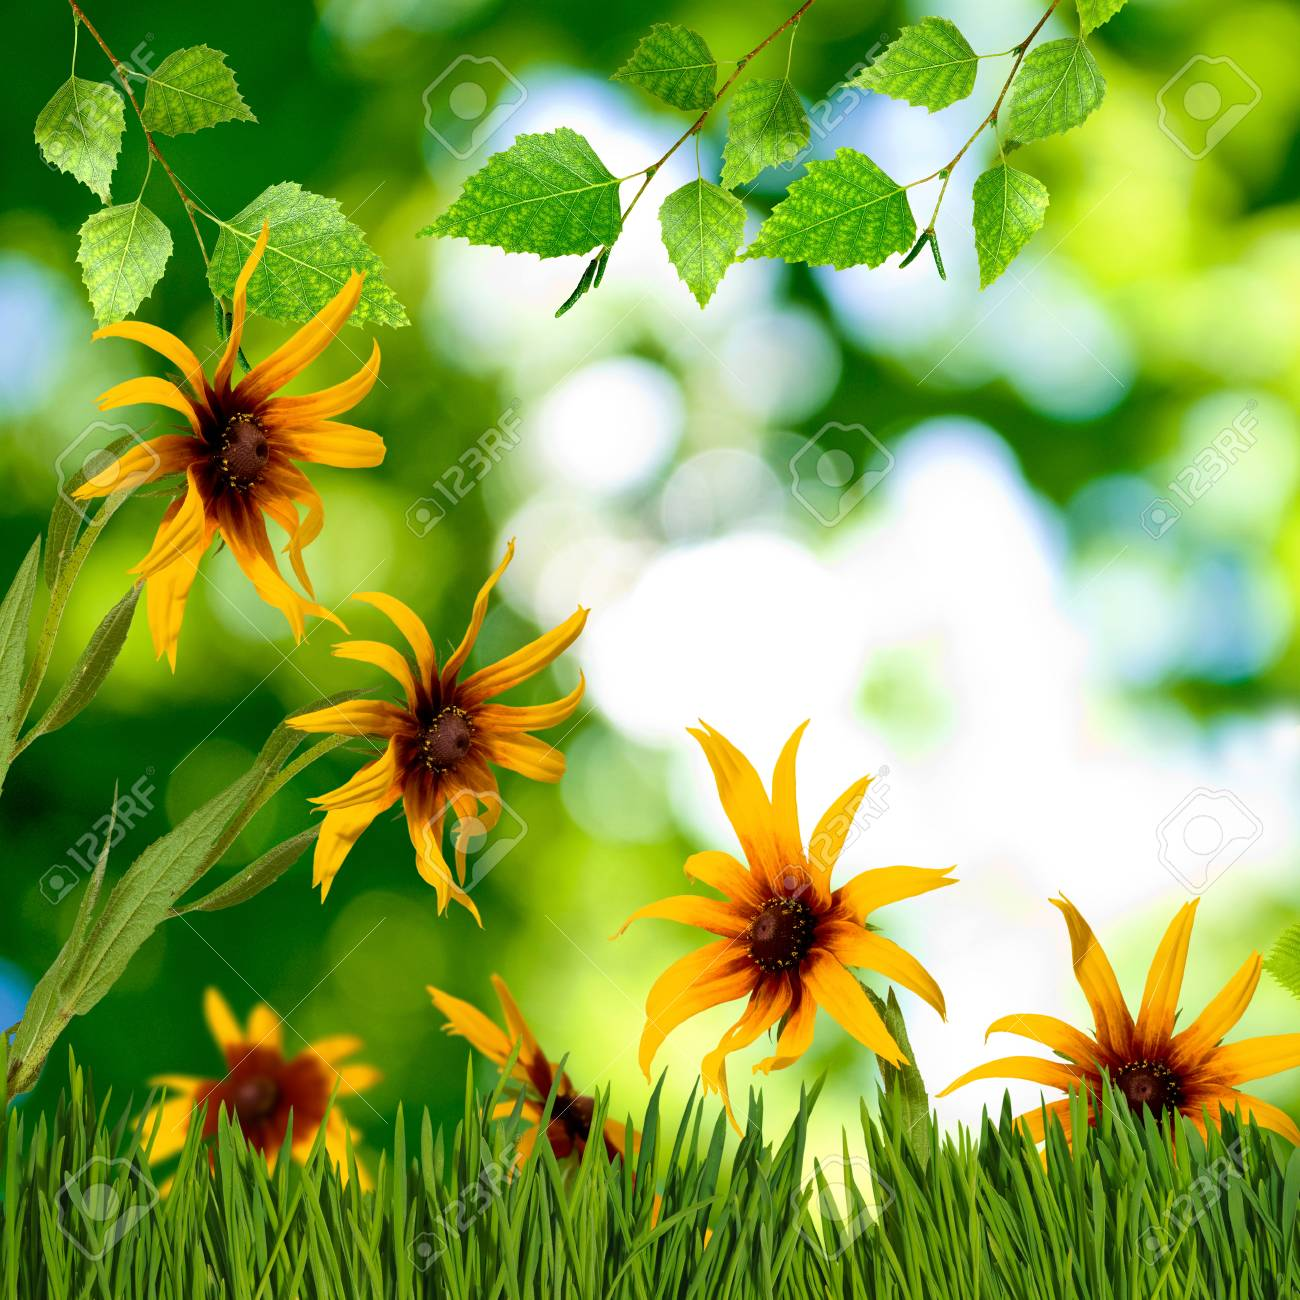 Image Of Beautiful Flowers In Garden Close Up Stock Photo Picture